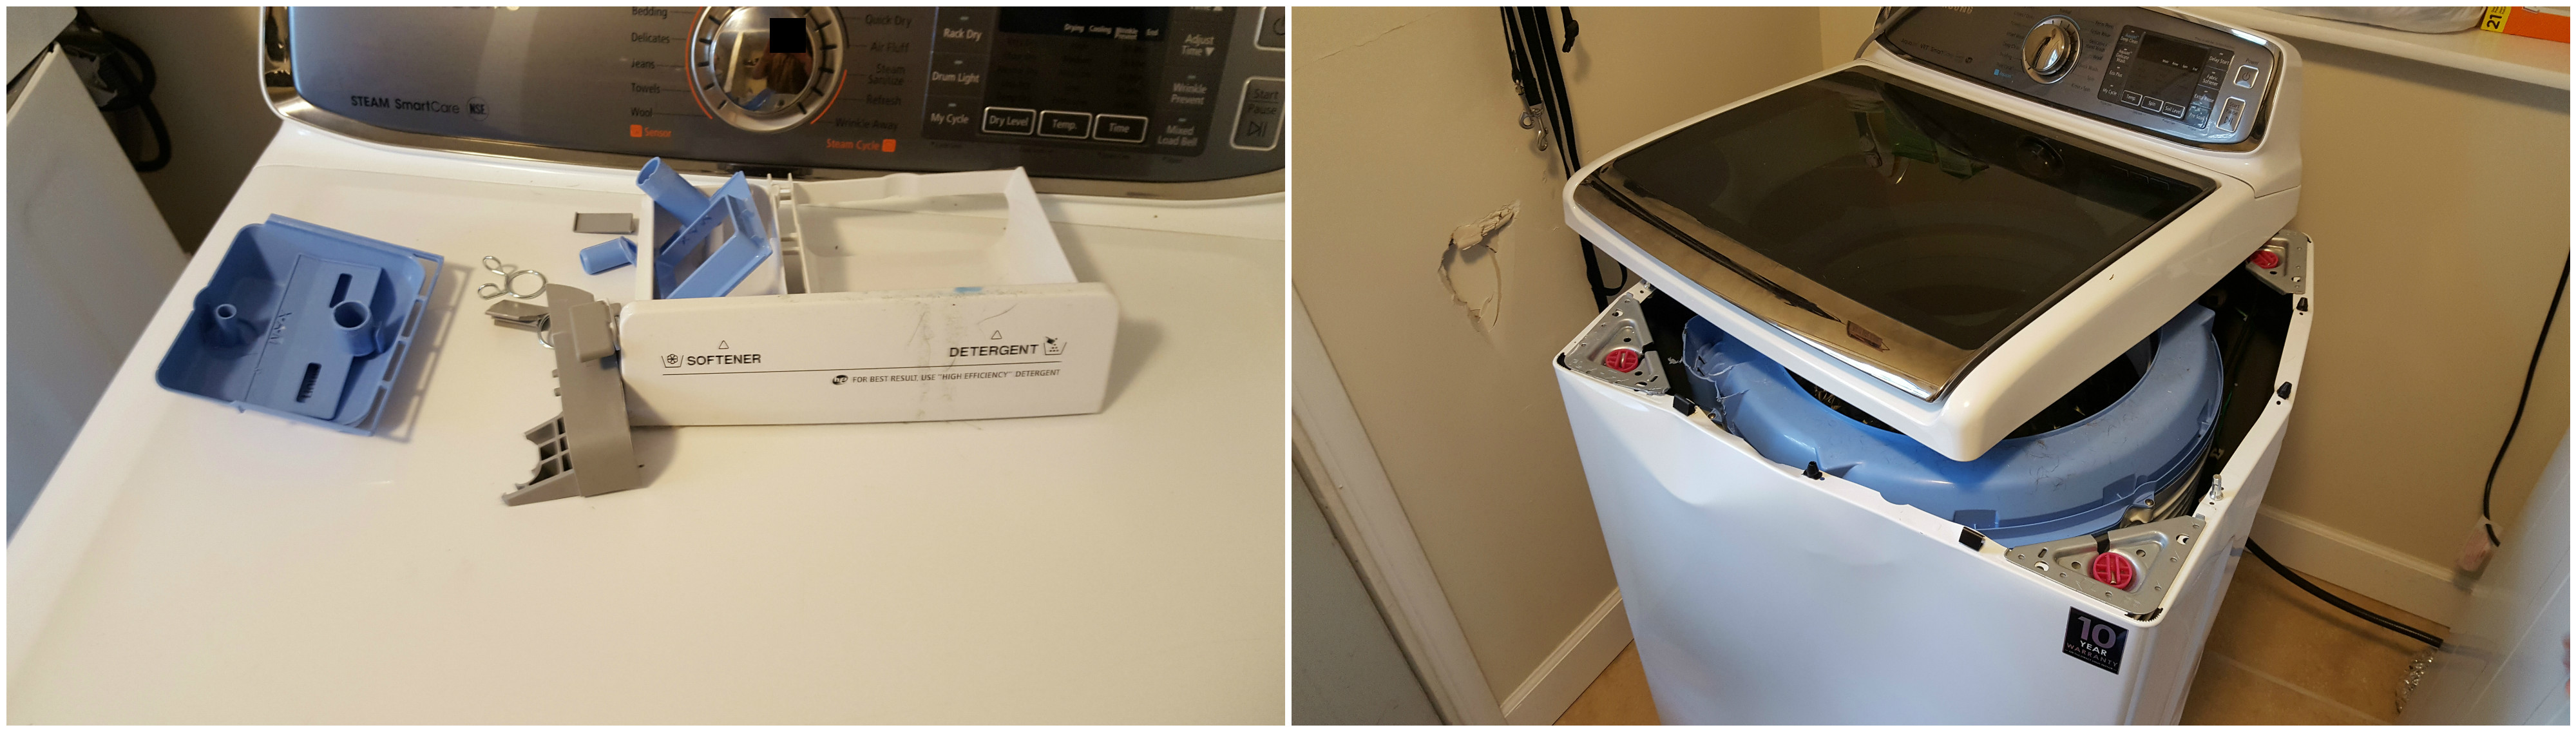 Amid Complaints Of Exploding Samsung Washing Machines